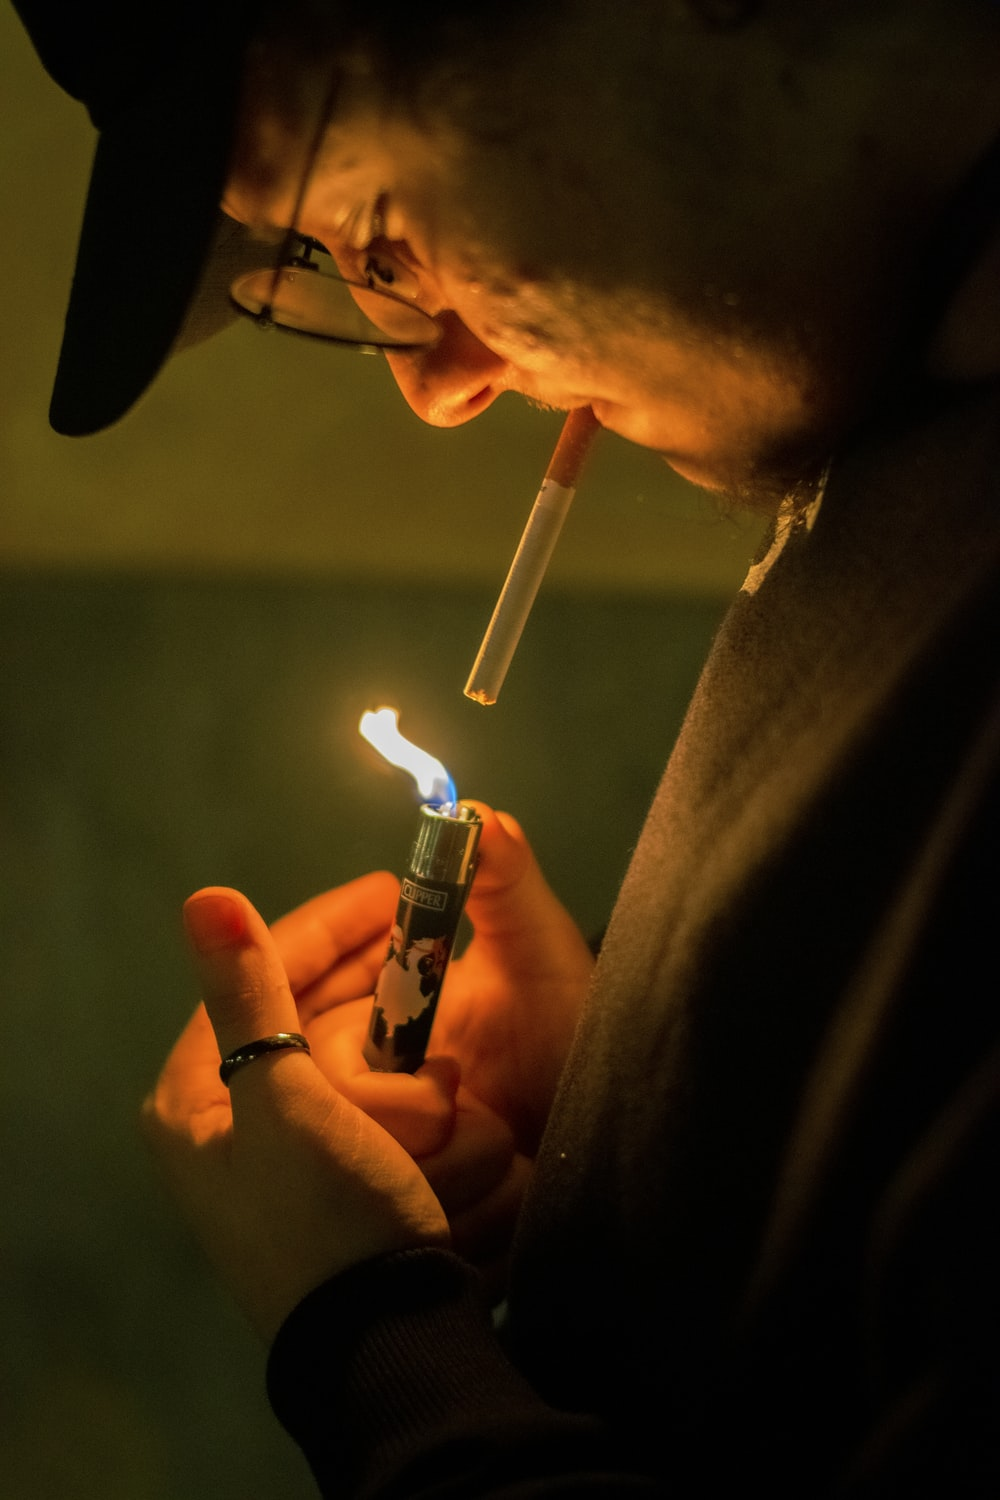 person holding blue disposable lighter